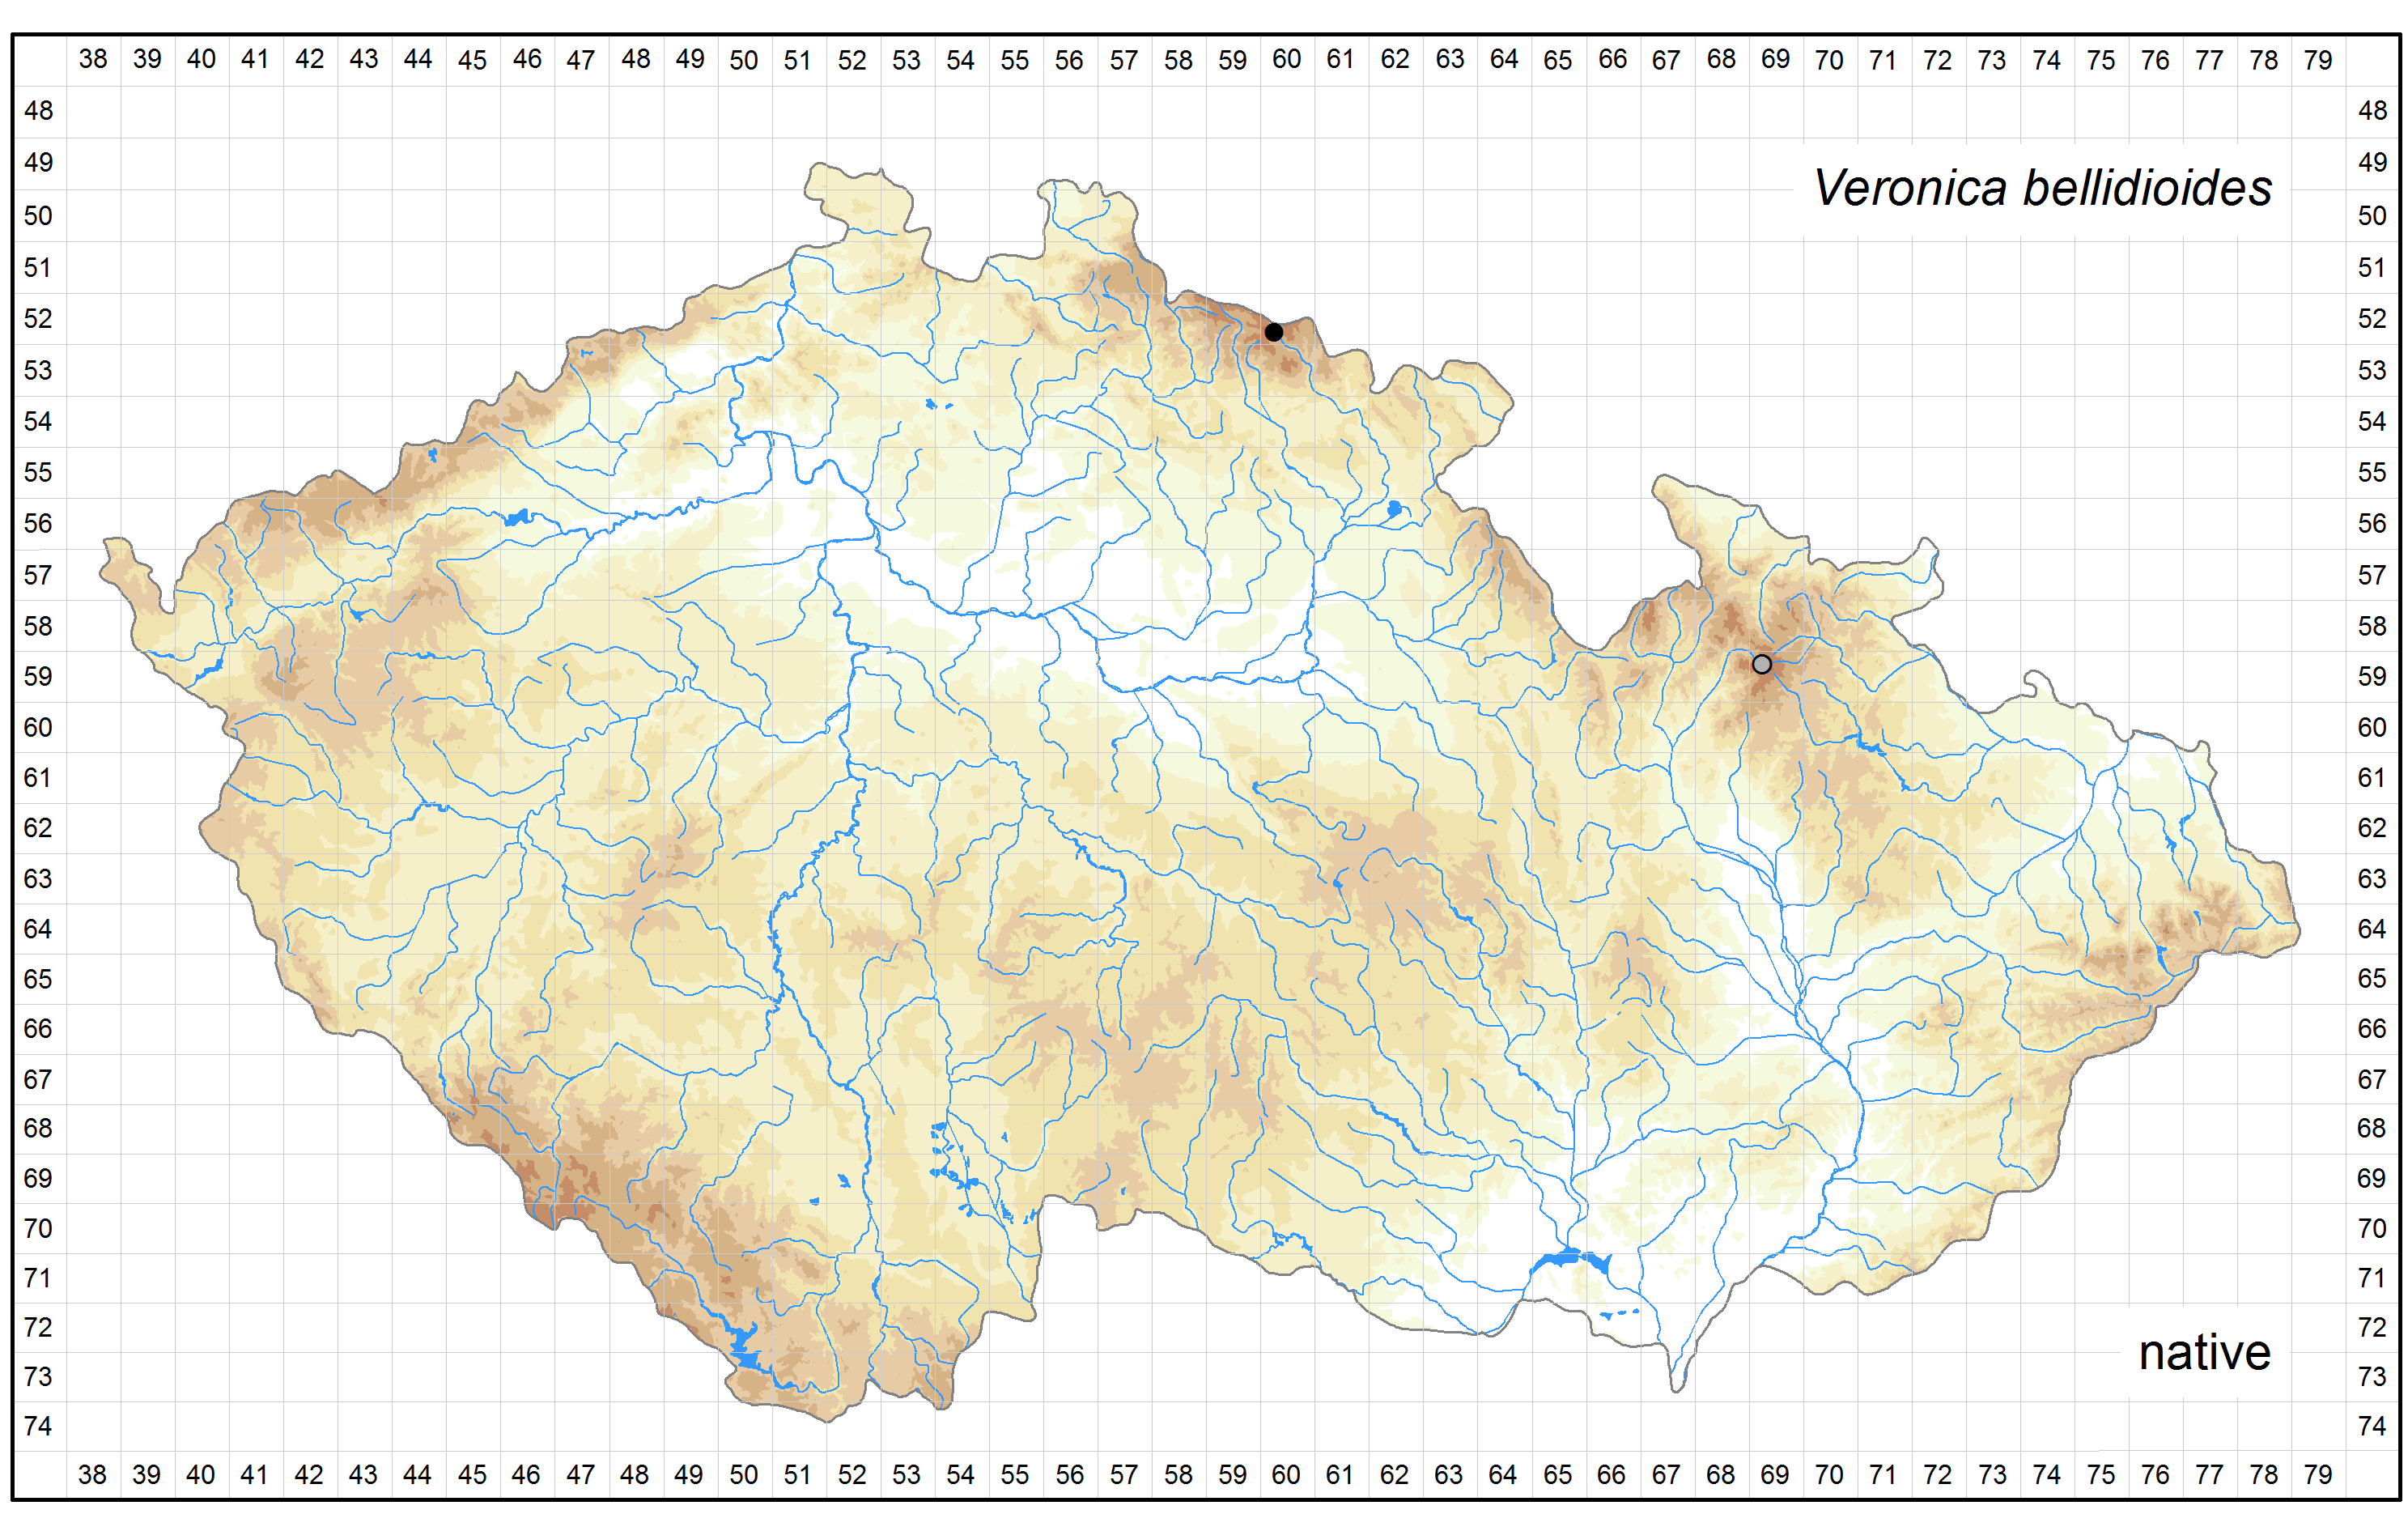 Distribution of Veronica bellidioides in the Czech Republic Author of the map: Jiří Danihelka Map produced on: 12-05-2016 Database records used for producing the distribution map of Veronica